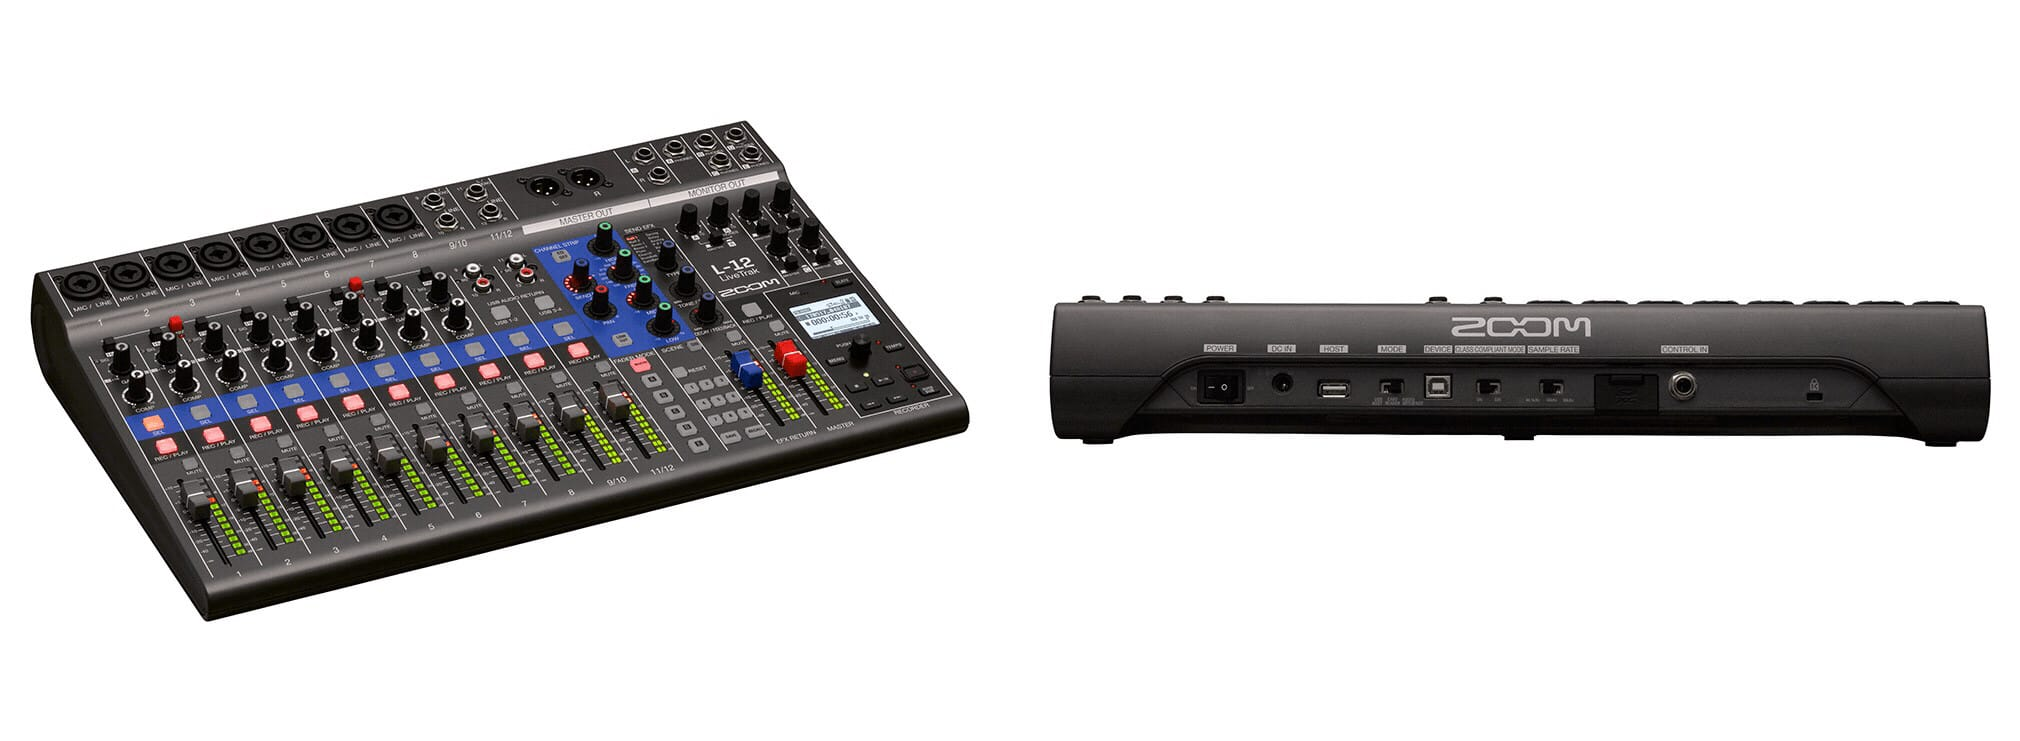 Zoom Livetrak L-12 mixing desk turns your iPad into a music studio